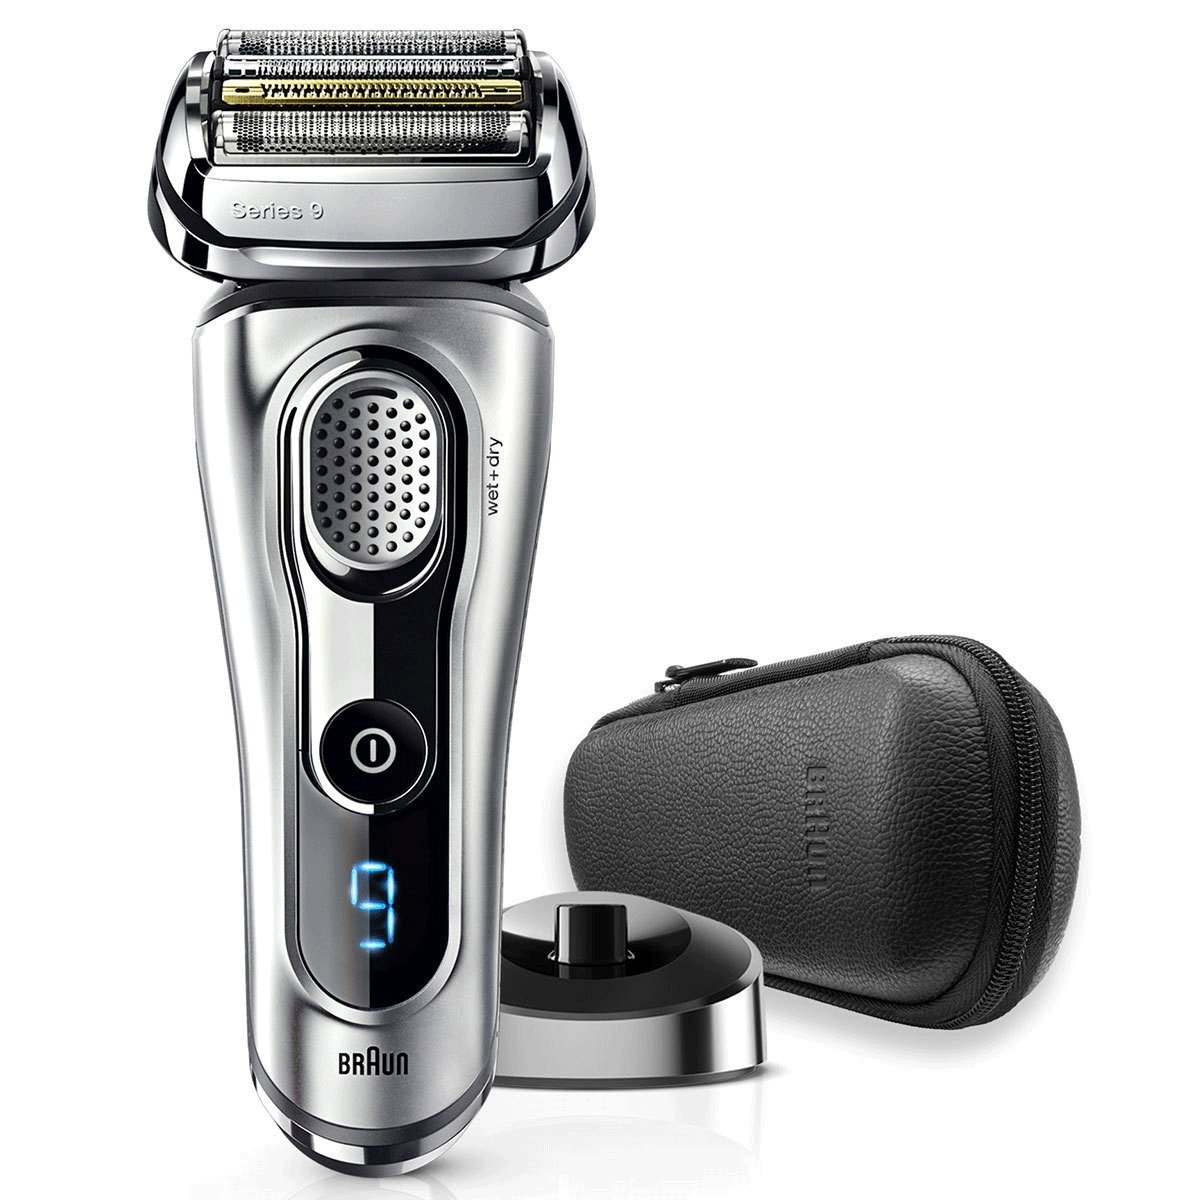 Braun Series 9 9260PS Men's Electric Wet & Dry Foil Shaver with Charging Stand Braun Personal Care 188223